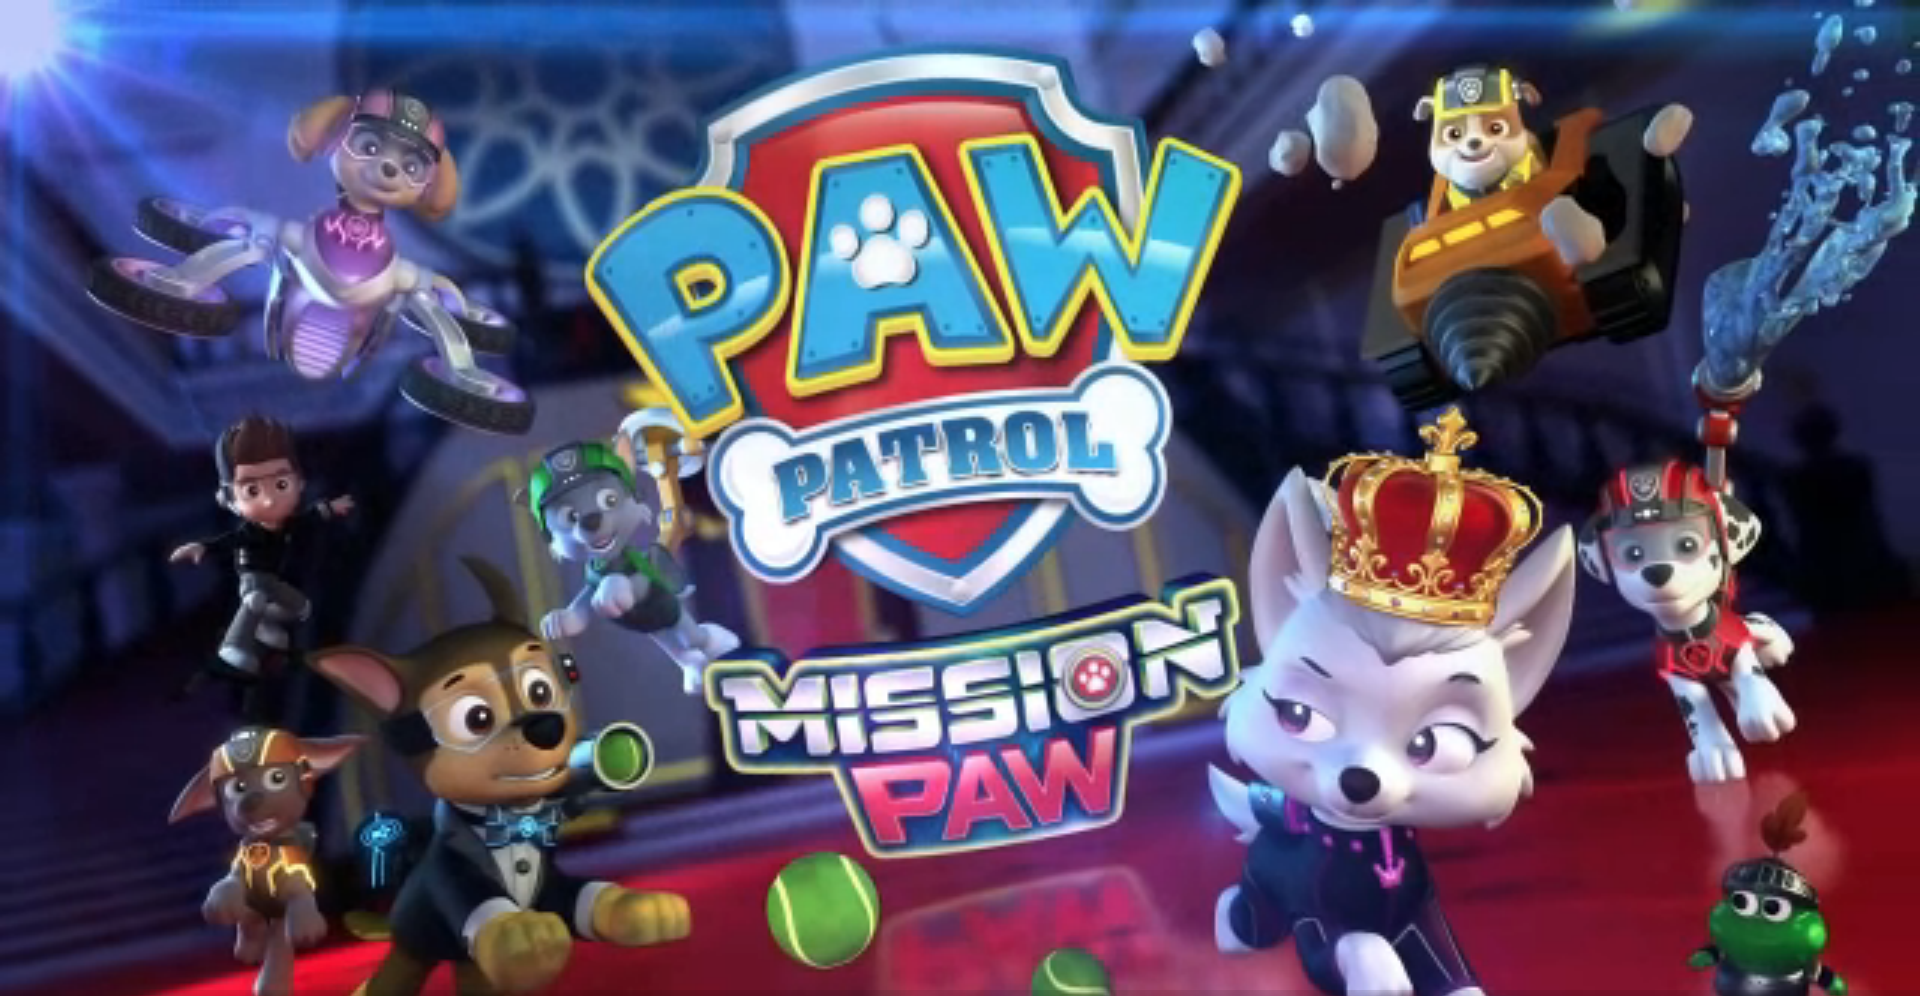 Mission Paw Quest For The Crown Paw Patrol Wiki